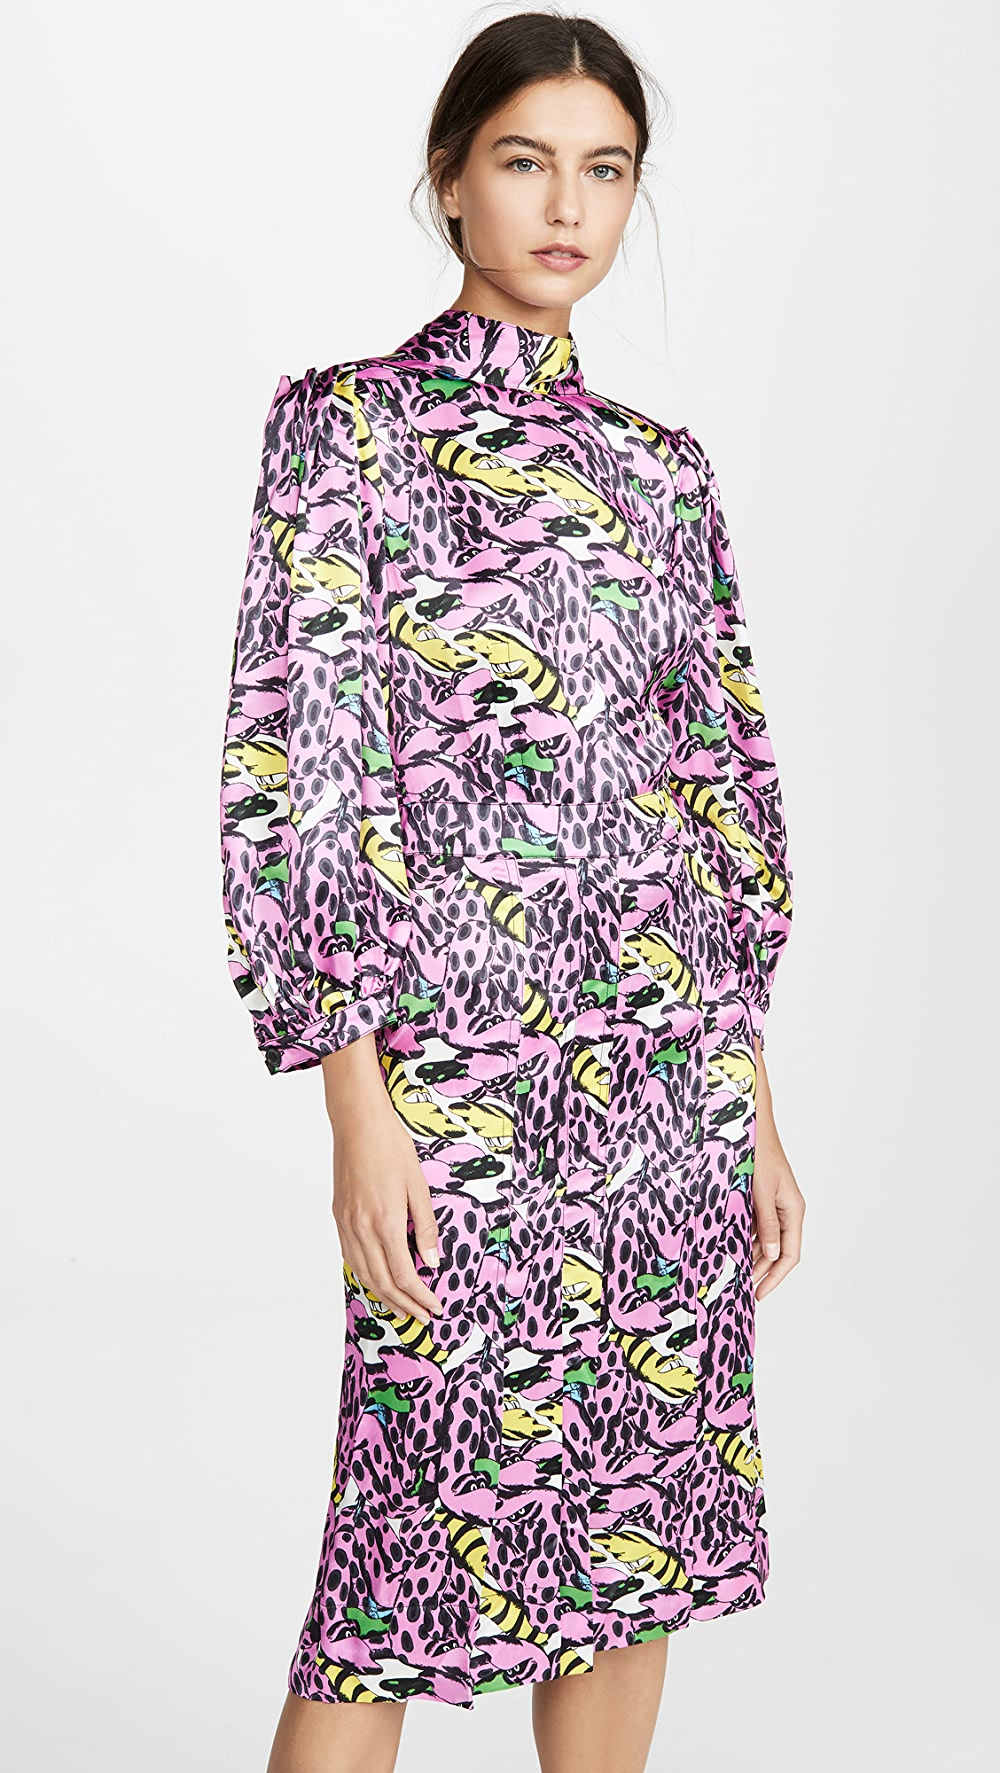 100% Quality Marni - Long Sleeve Printed Dress High Standard In Quality And Hygiene